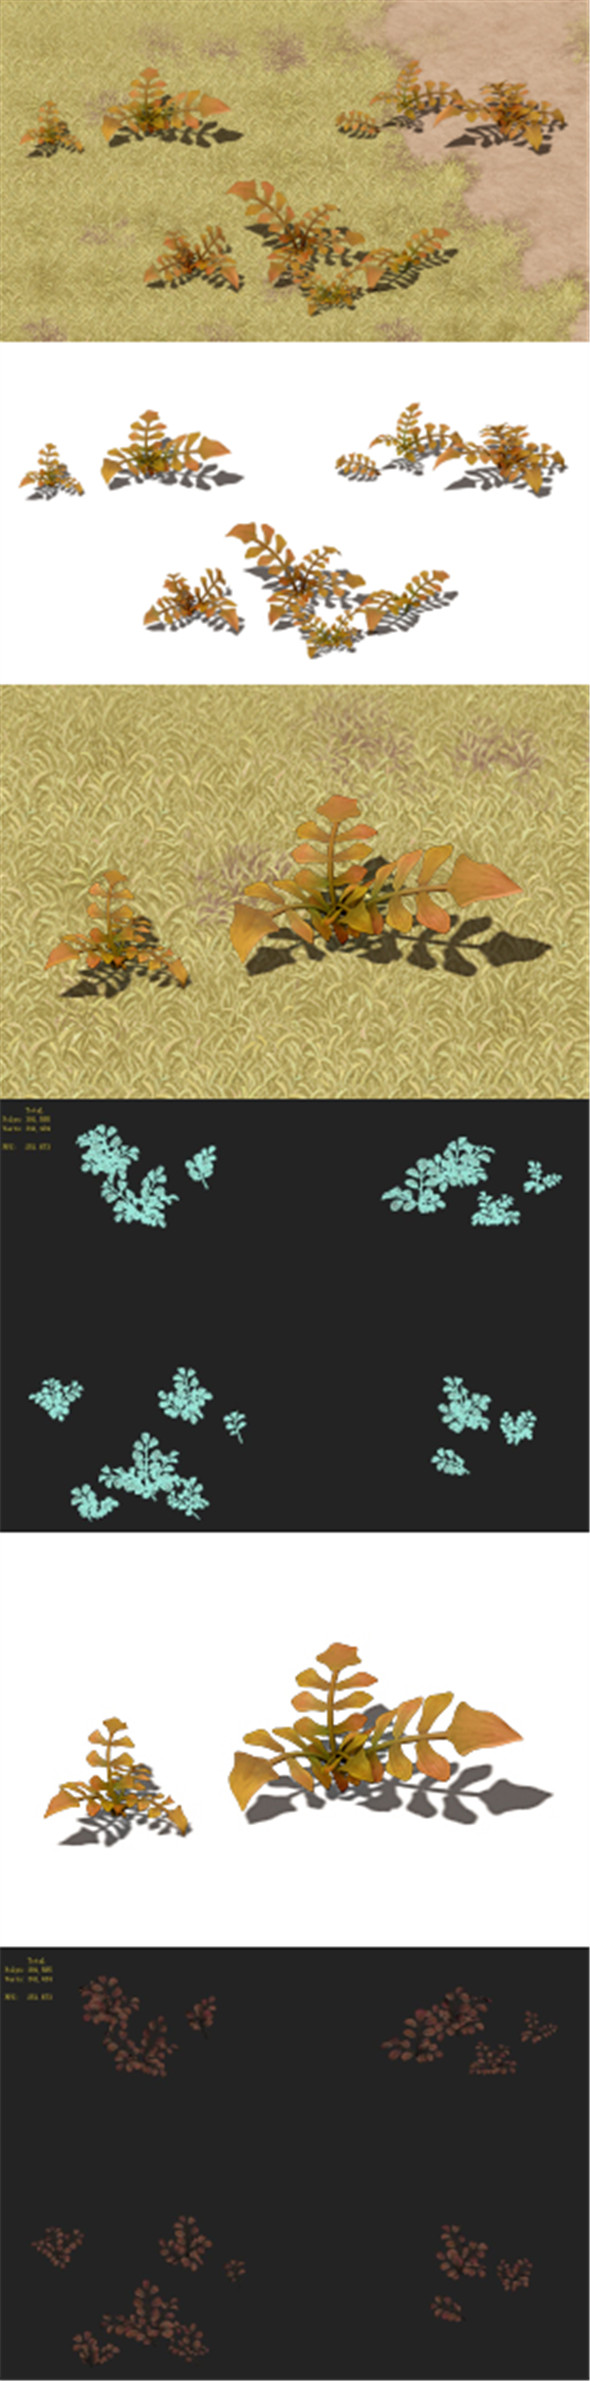 Cartoon version - wasteland vegetation - 3DOcean Item for Sale